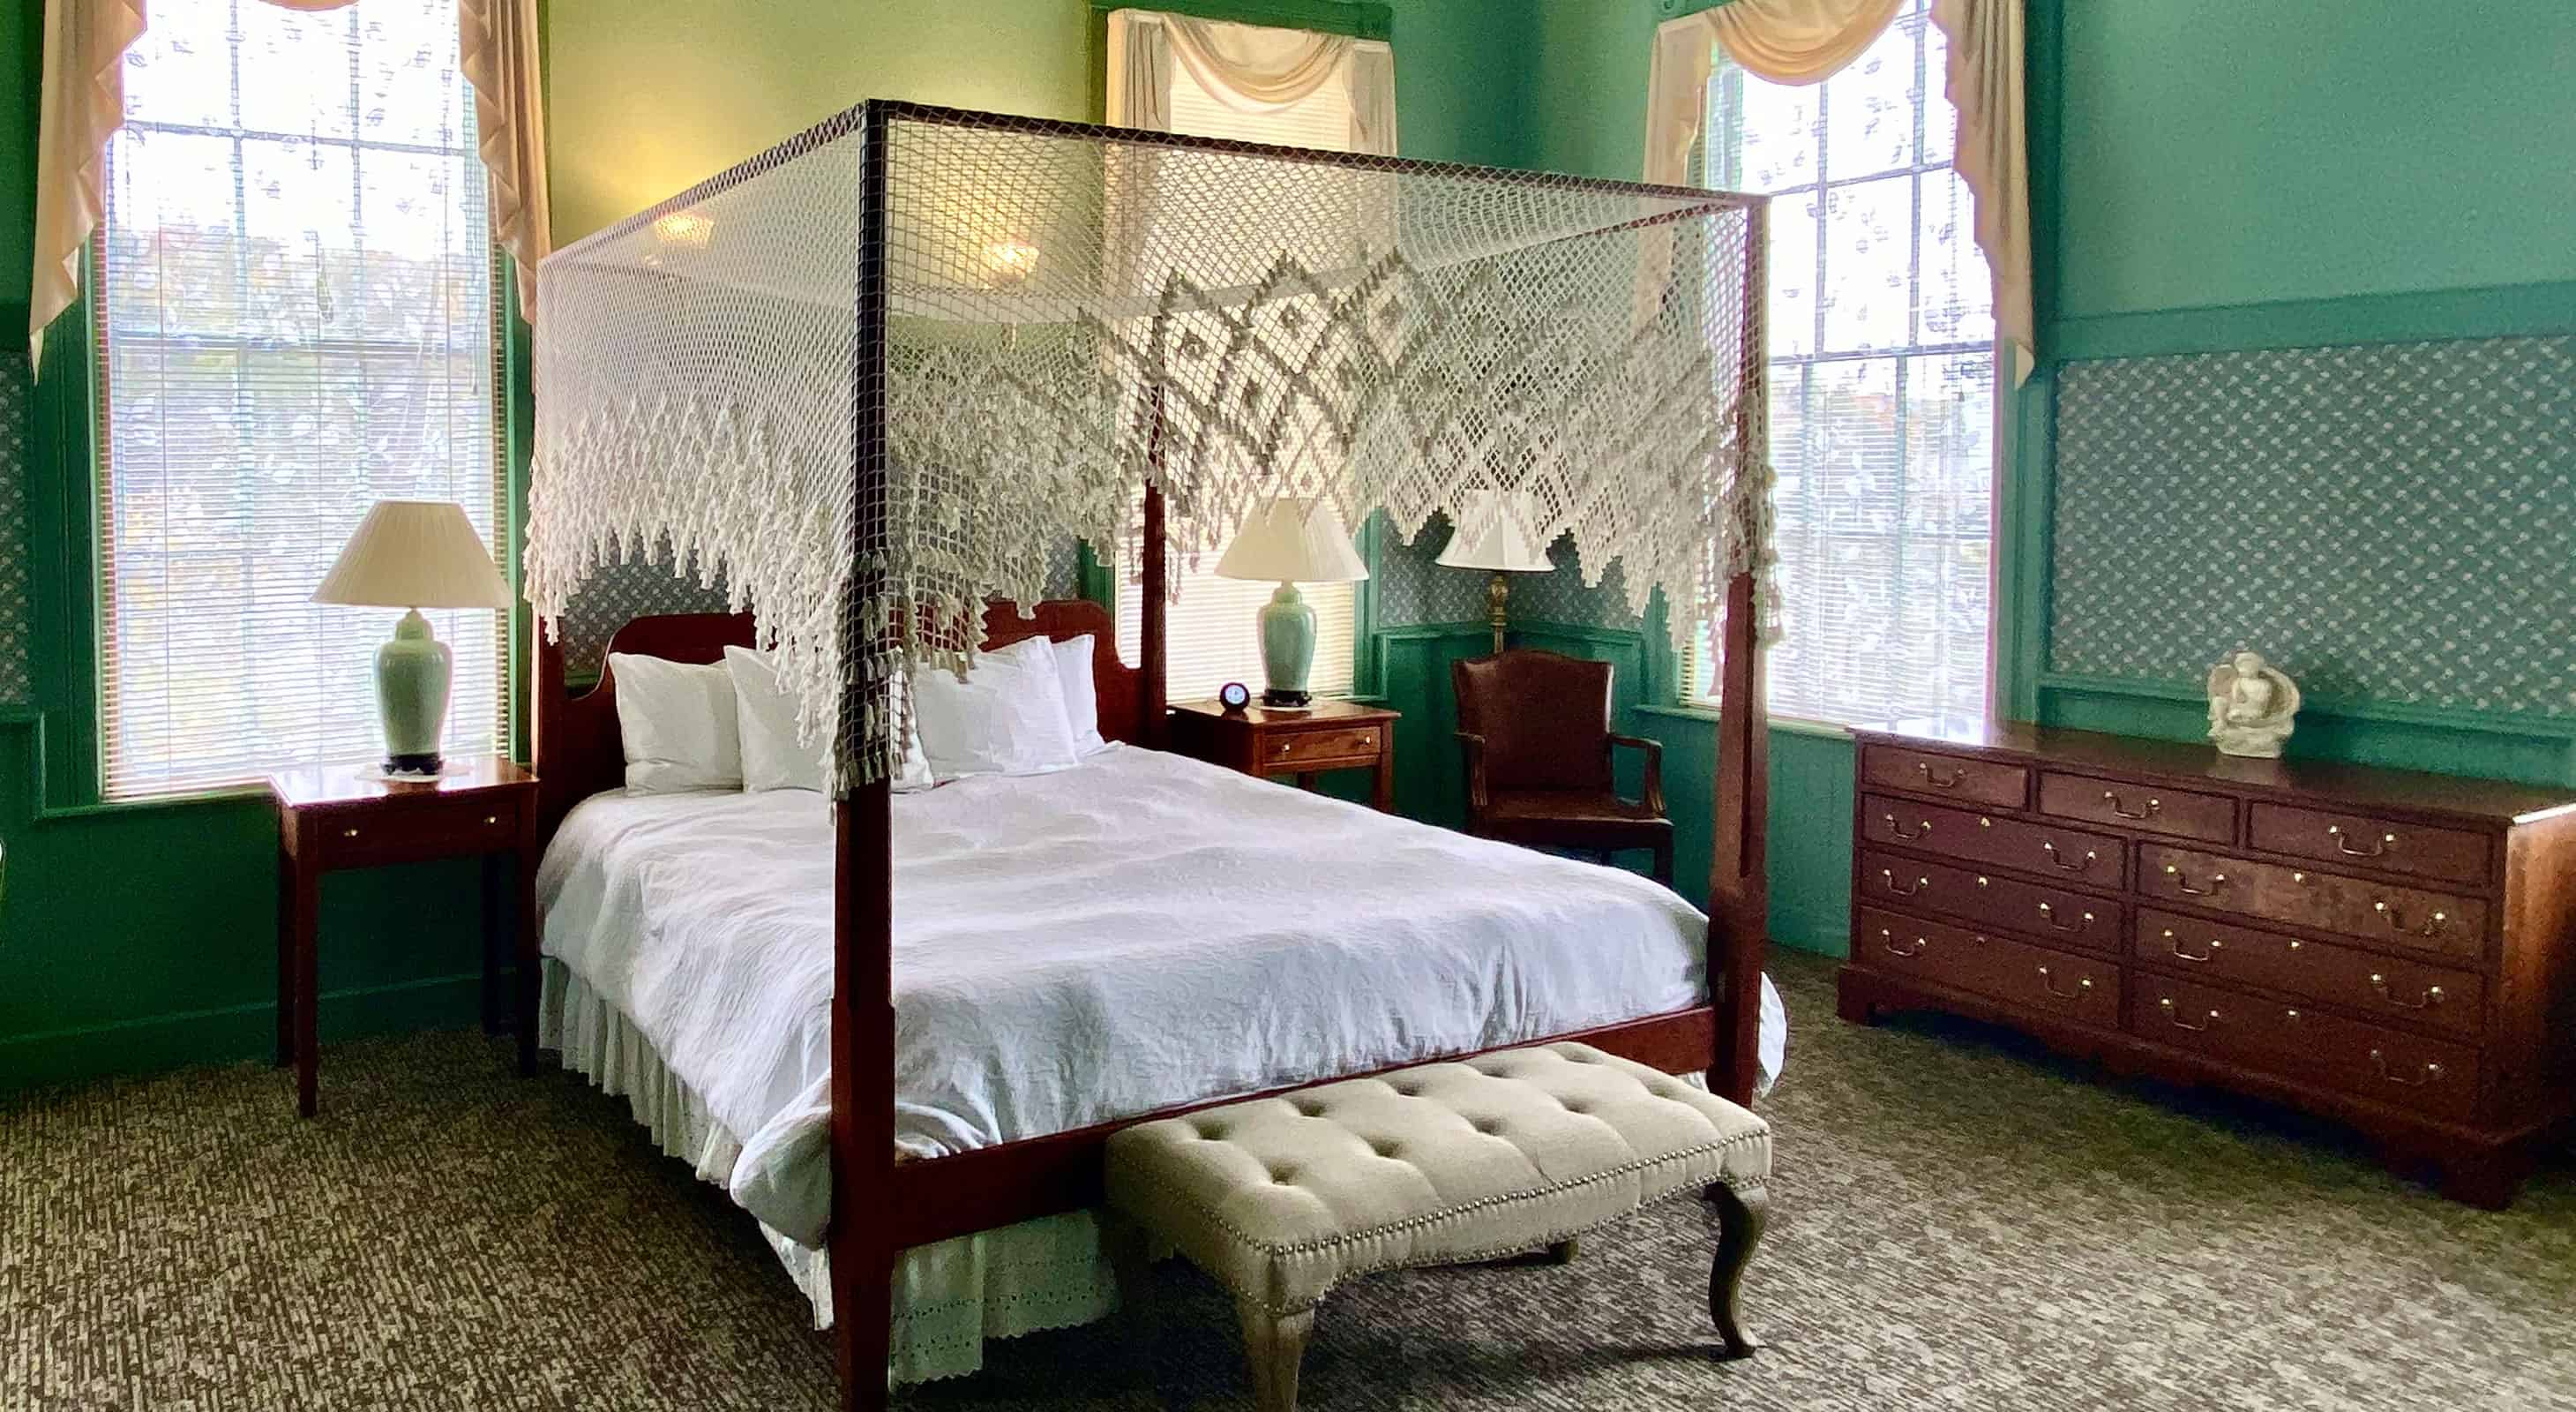 four poster bed with lace and green walls